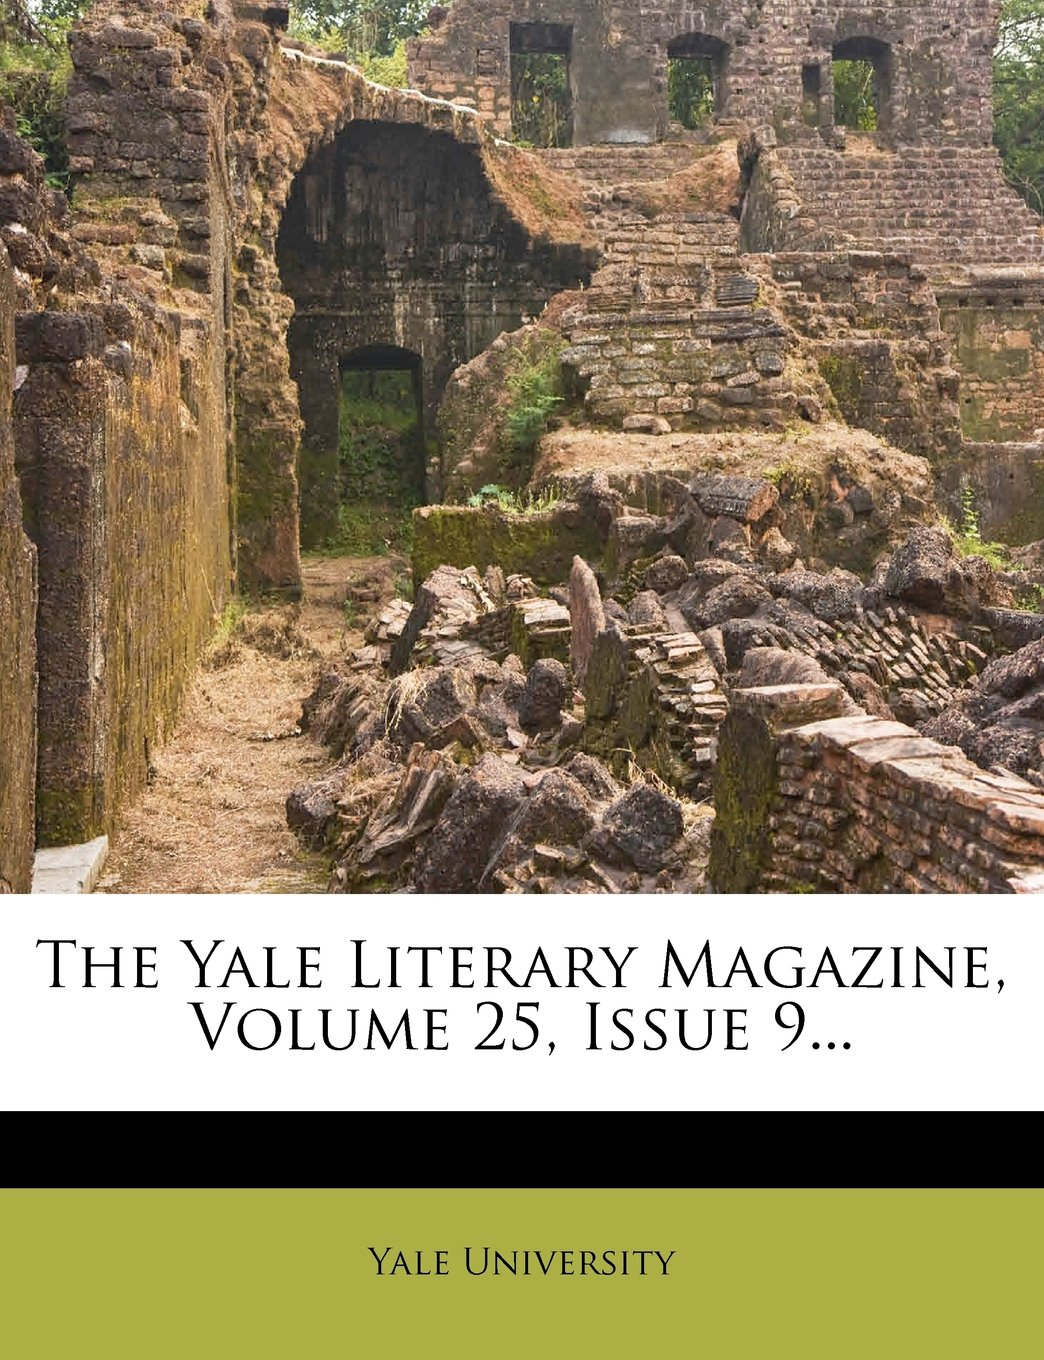 Download The Yale Literary Magazine, Volume 25, Issue 9... ebook